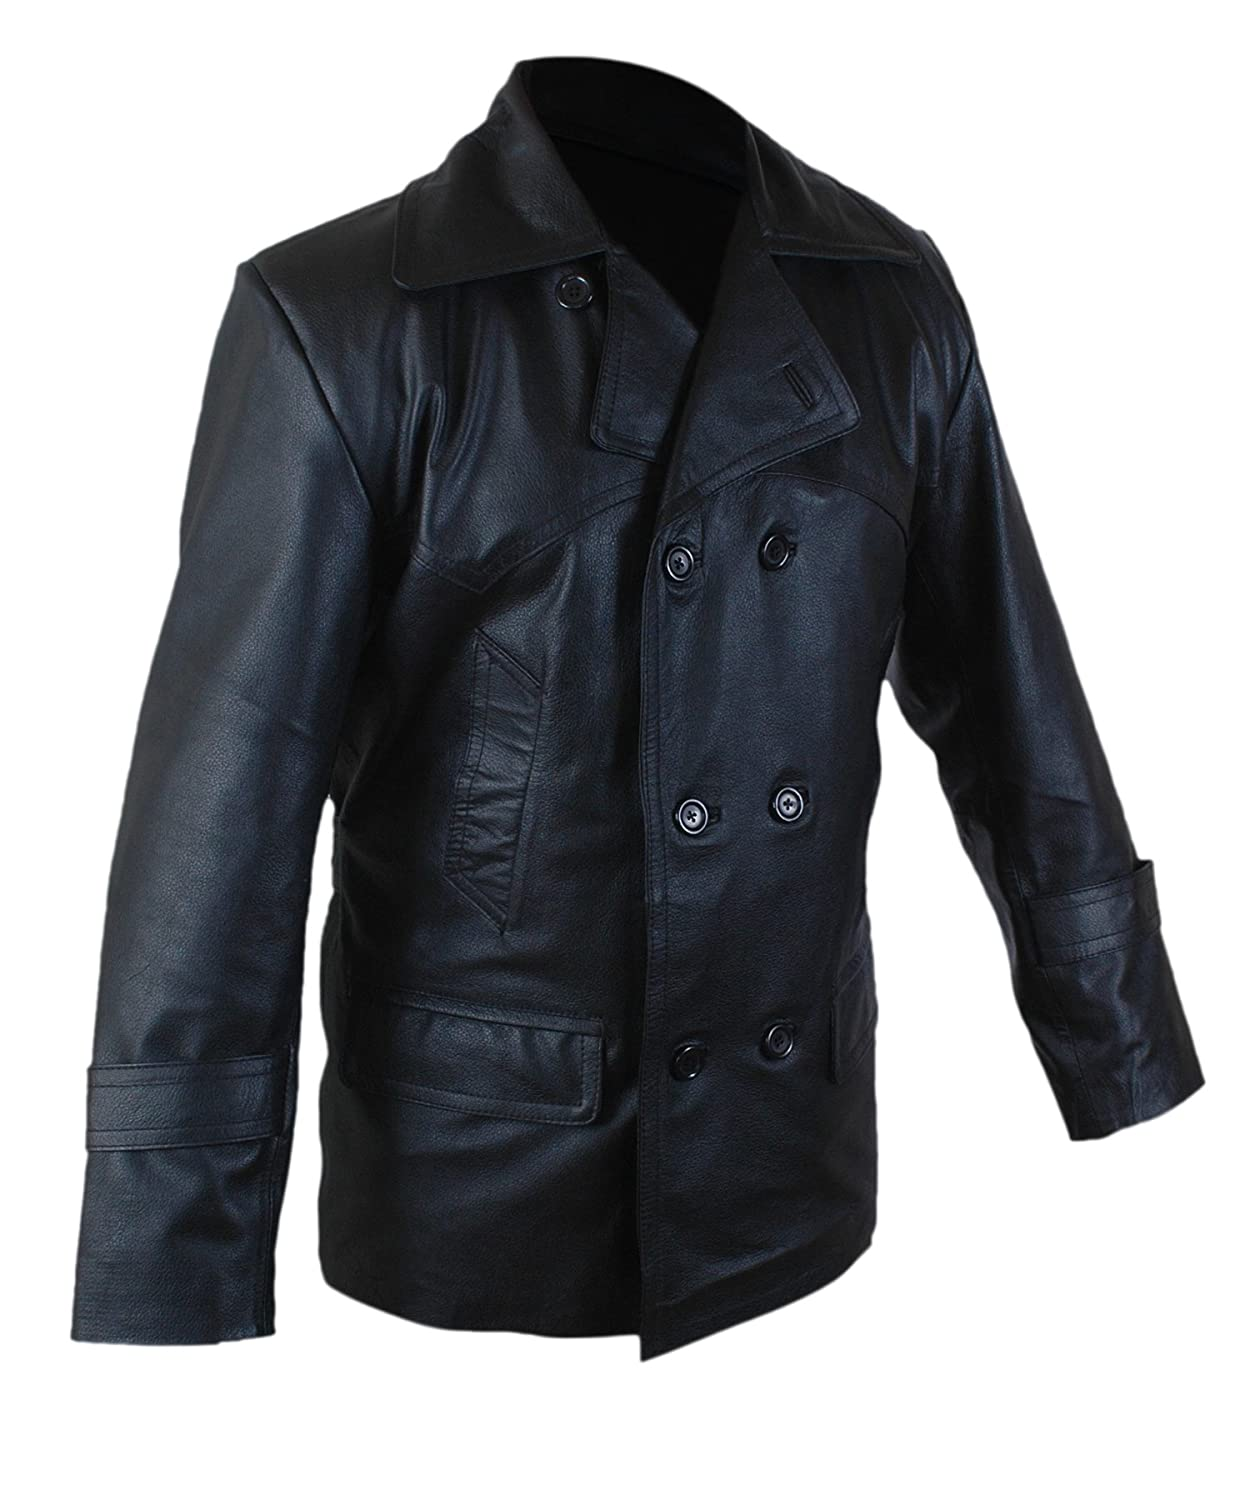 Dr Who Genuine Leather Jacket